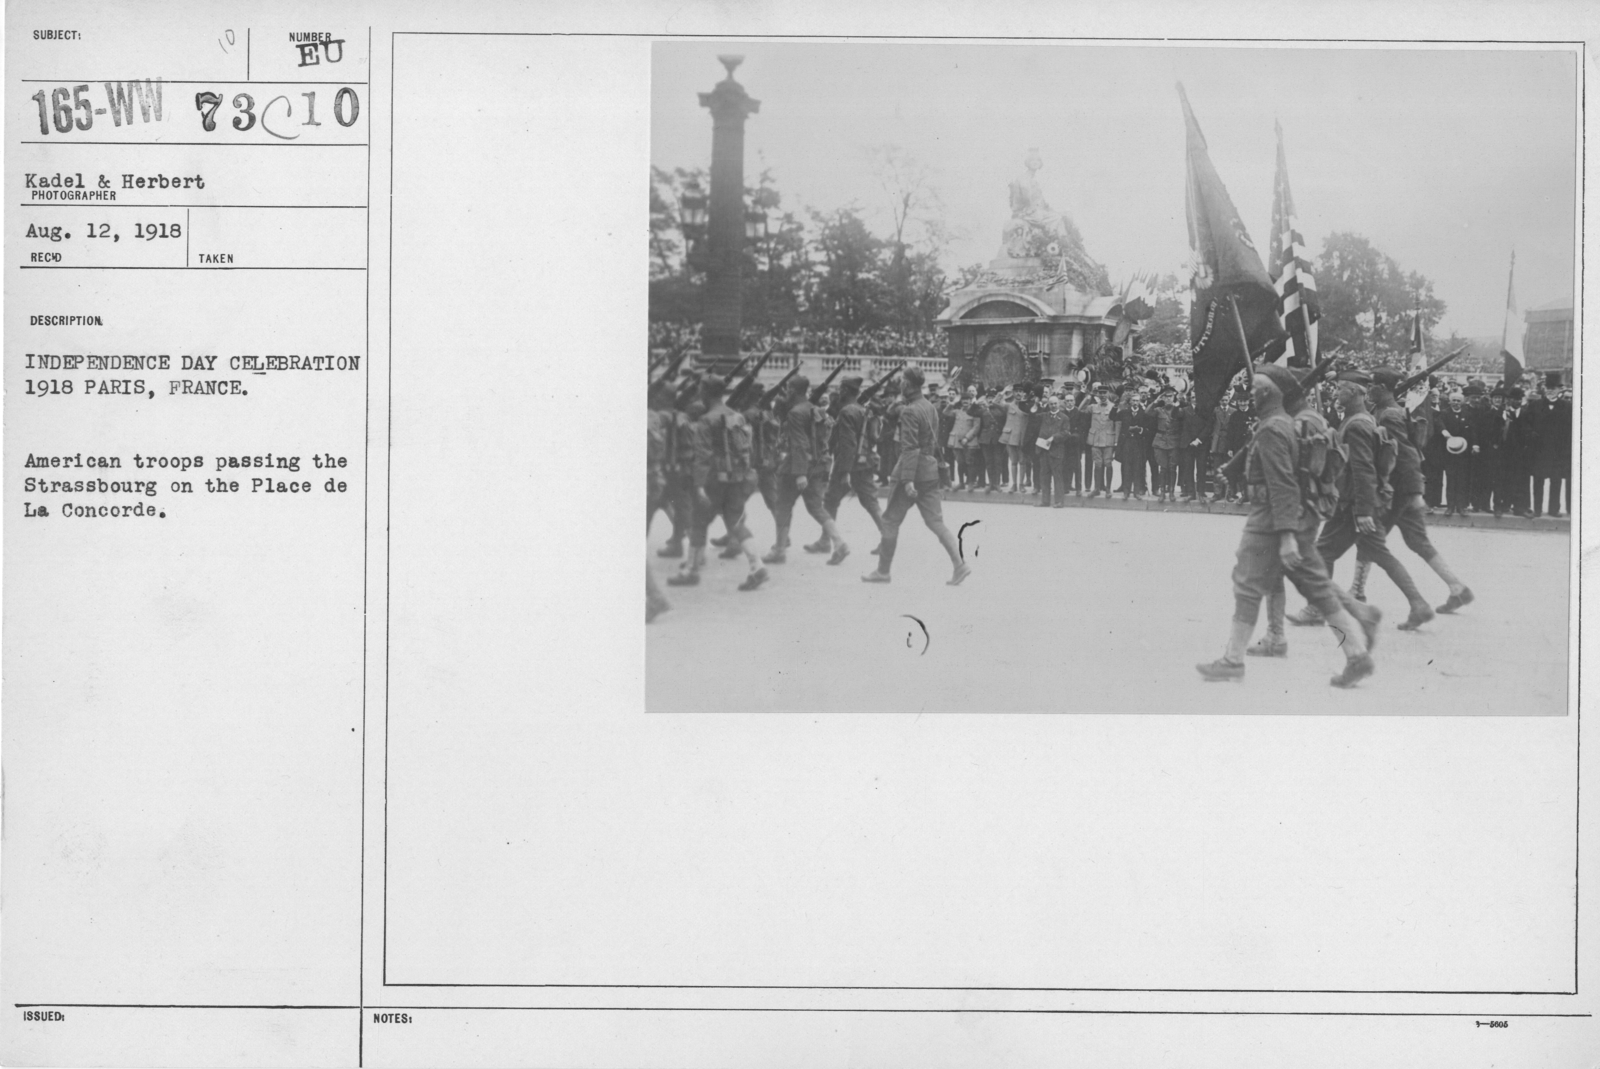 Ceremonies - American Independence Day, 1918 - France - Independence Day celebration 1918, Paris, France. American troops passing the Strassbourg on the Place de La Concorde